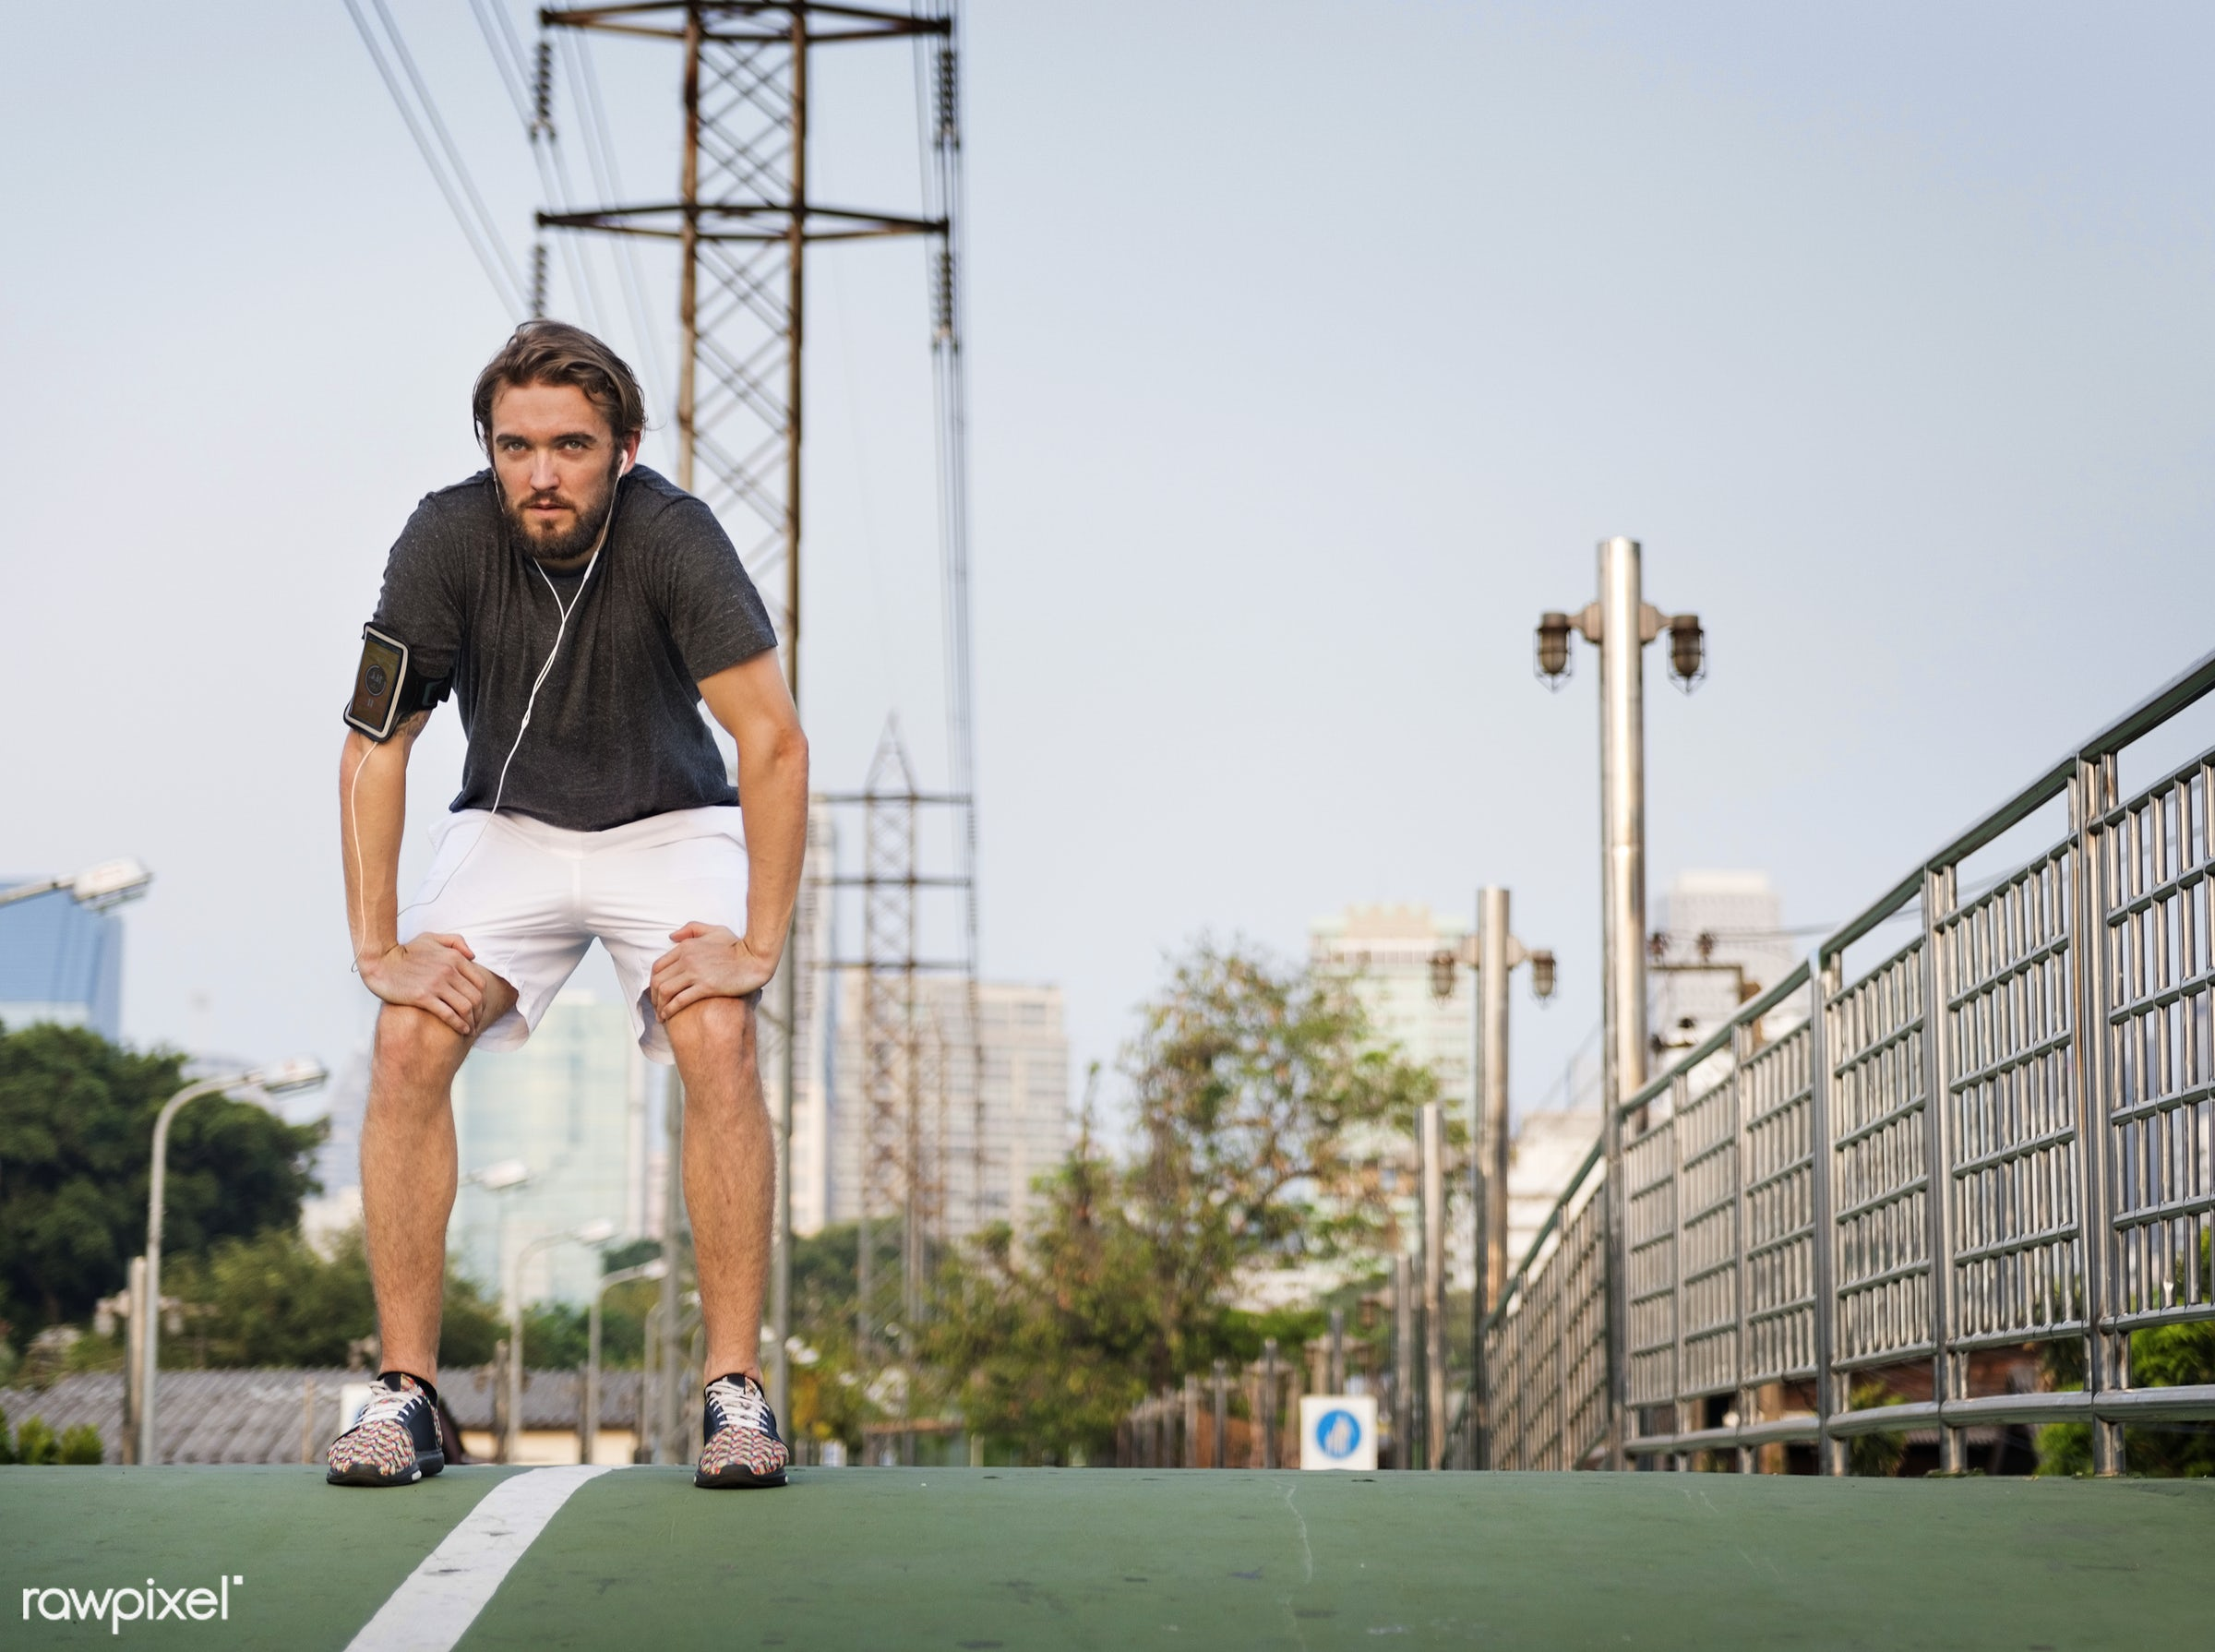 A man working out in the city - athlete, bangkok, active, adult, athletic, attractive, city, cool down, exercise, exercising...